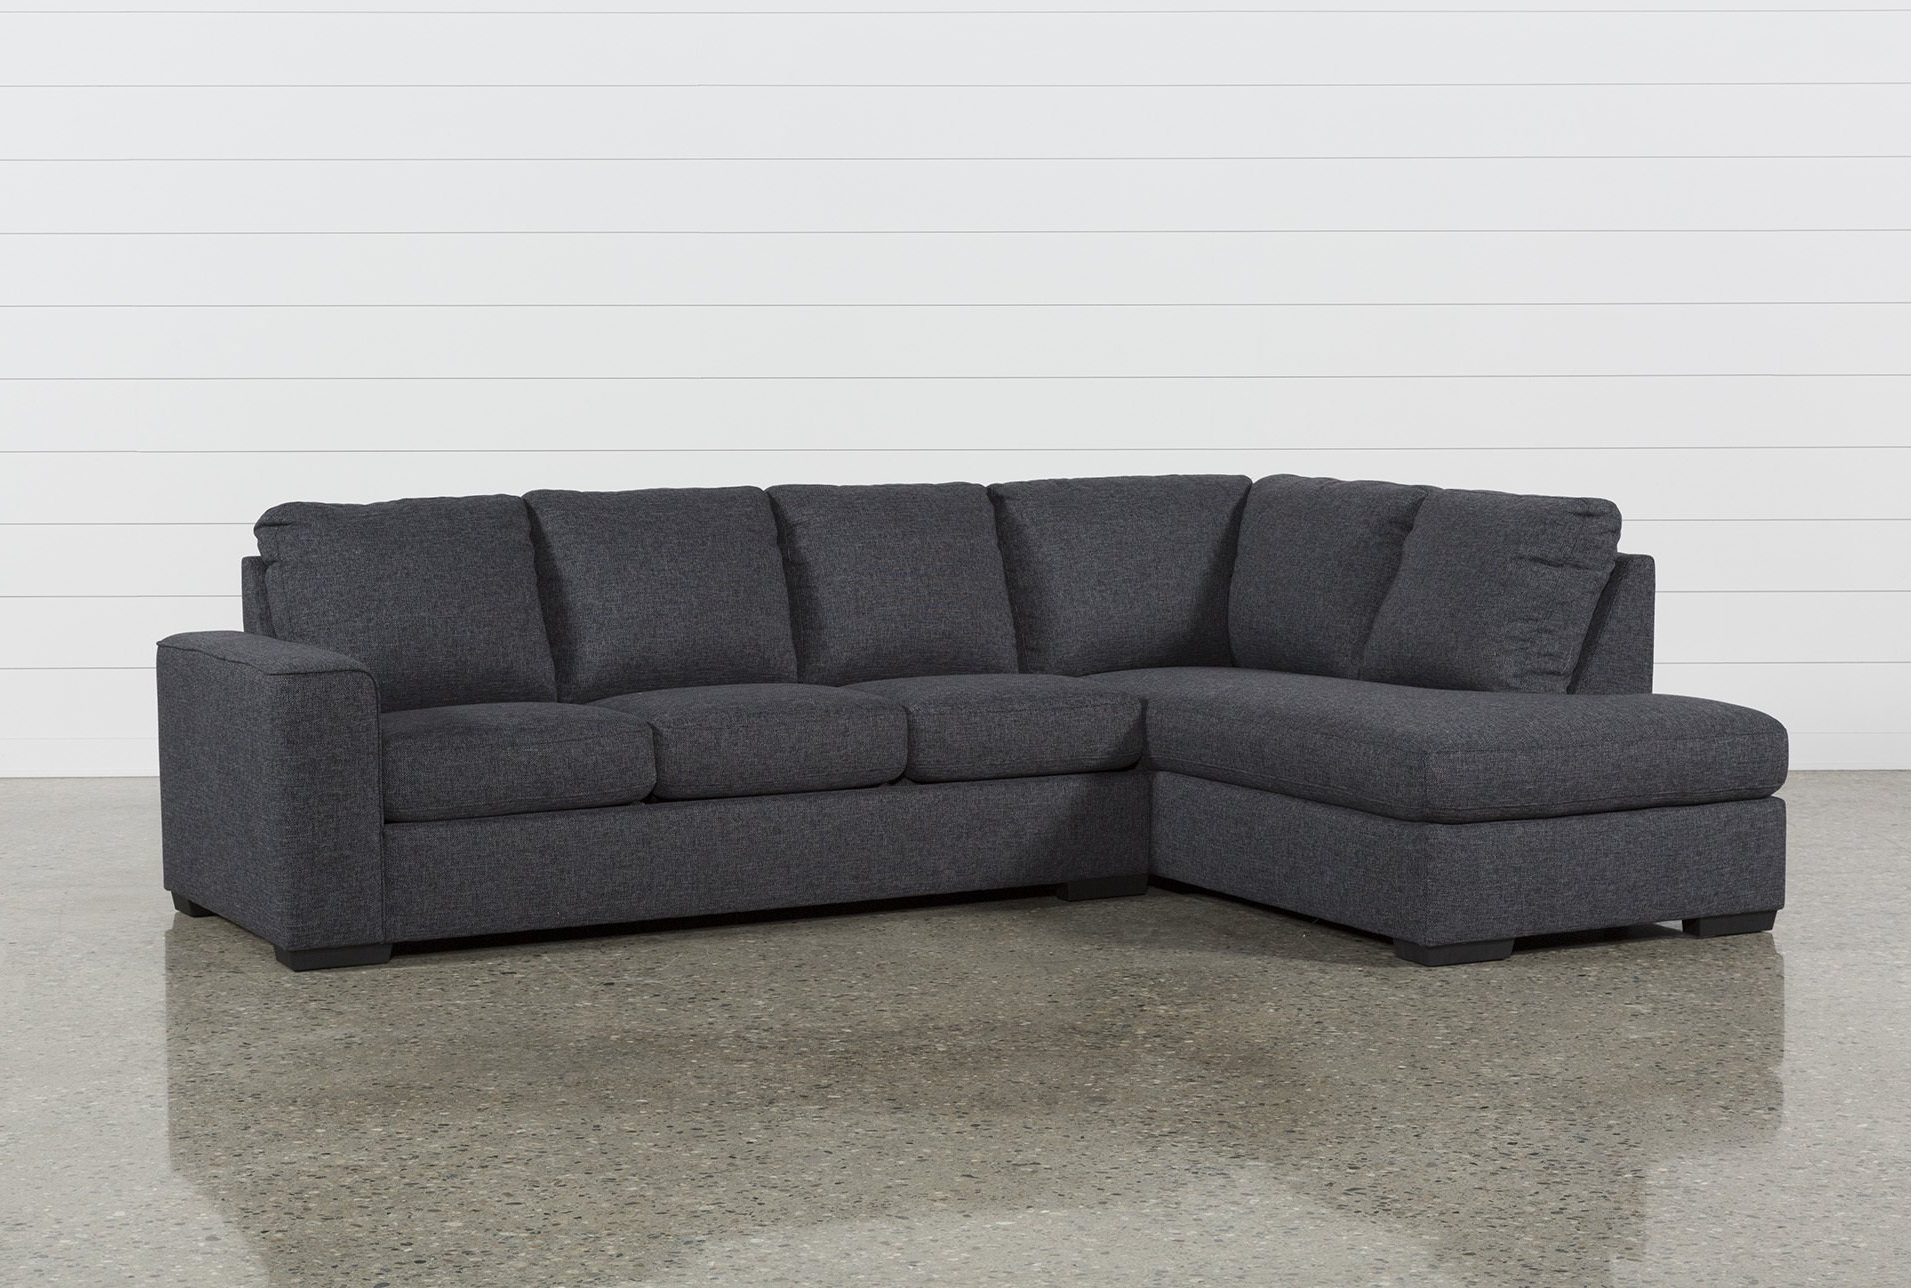 Dark Grey And Products Intended For Preferred Aspen 2 Piece Sleeper Sectionals With Laf Chaise (View 11 of 20)